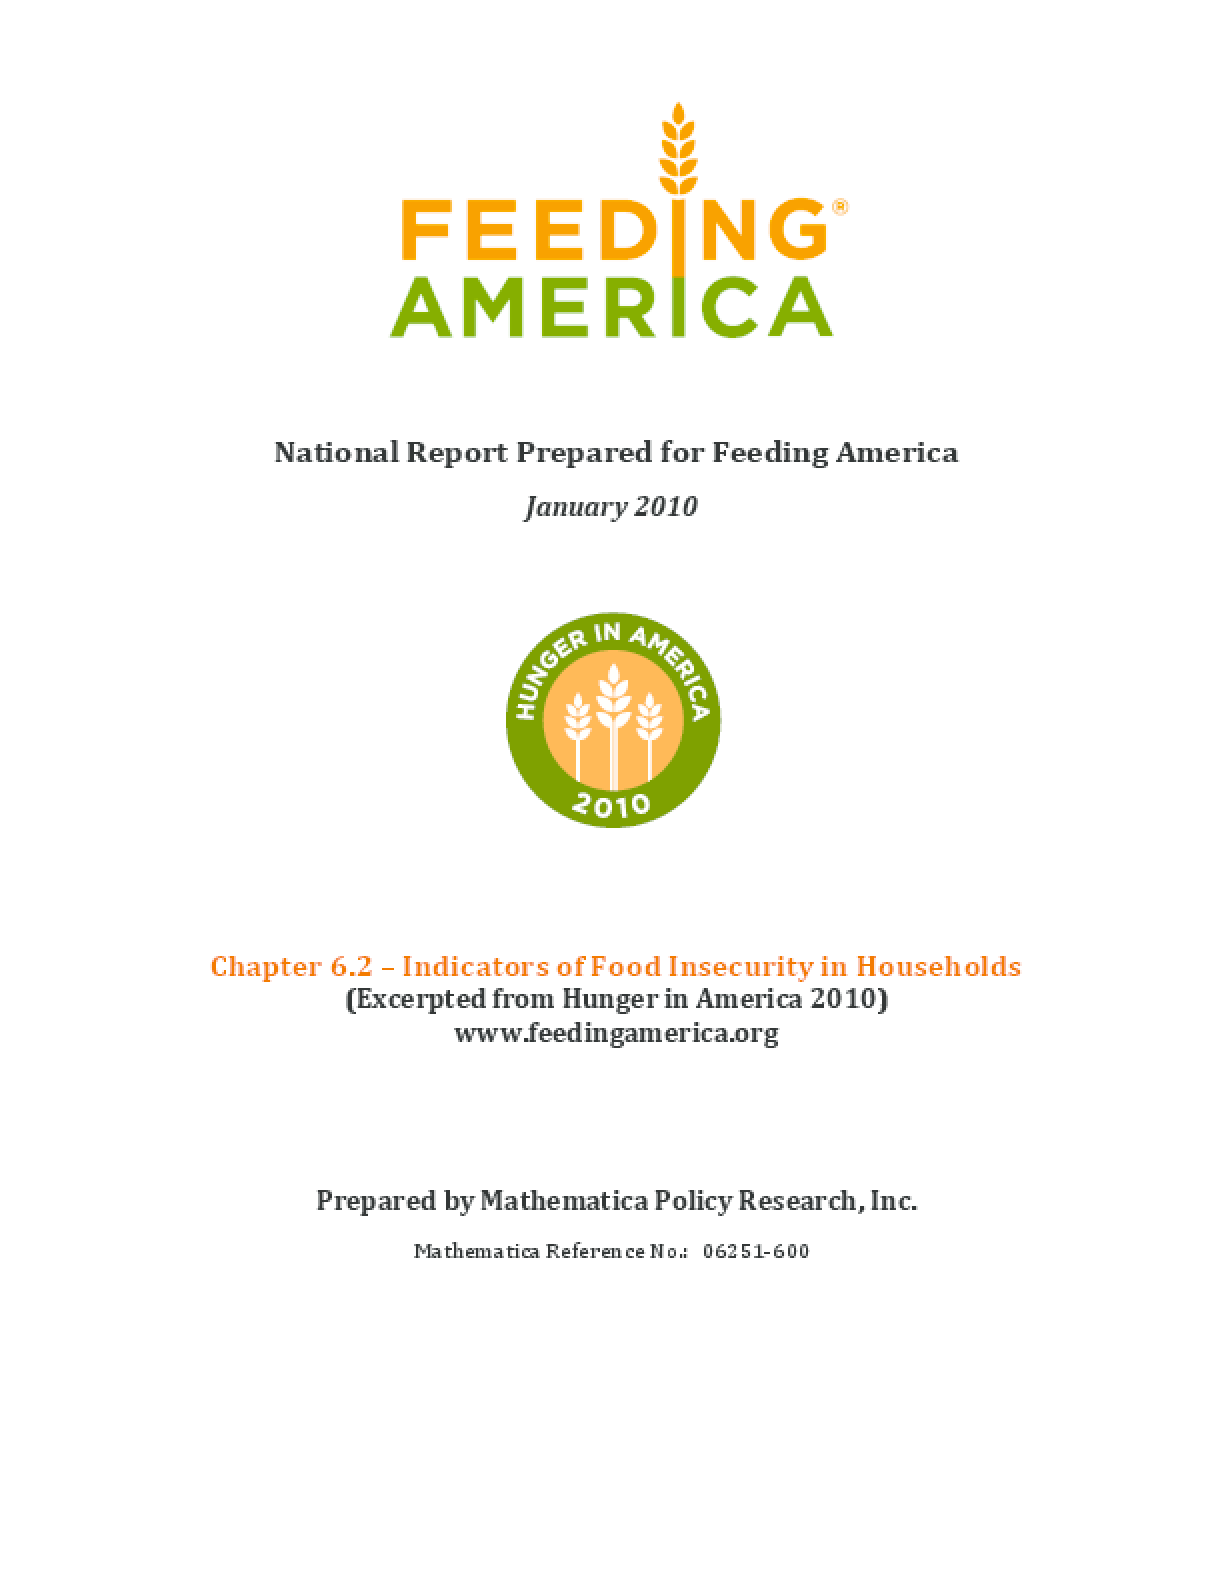 Indicators of Food Insecurity in Feeding America Client Households